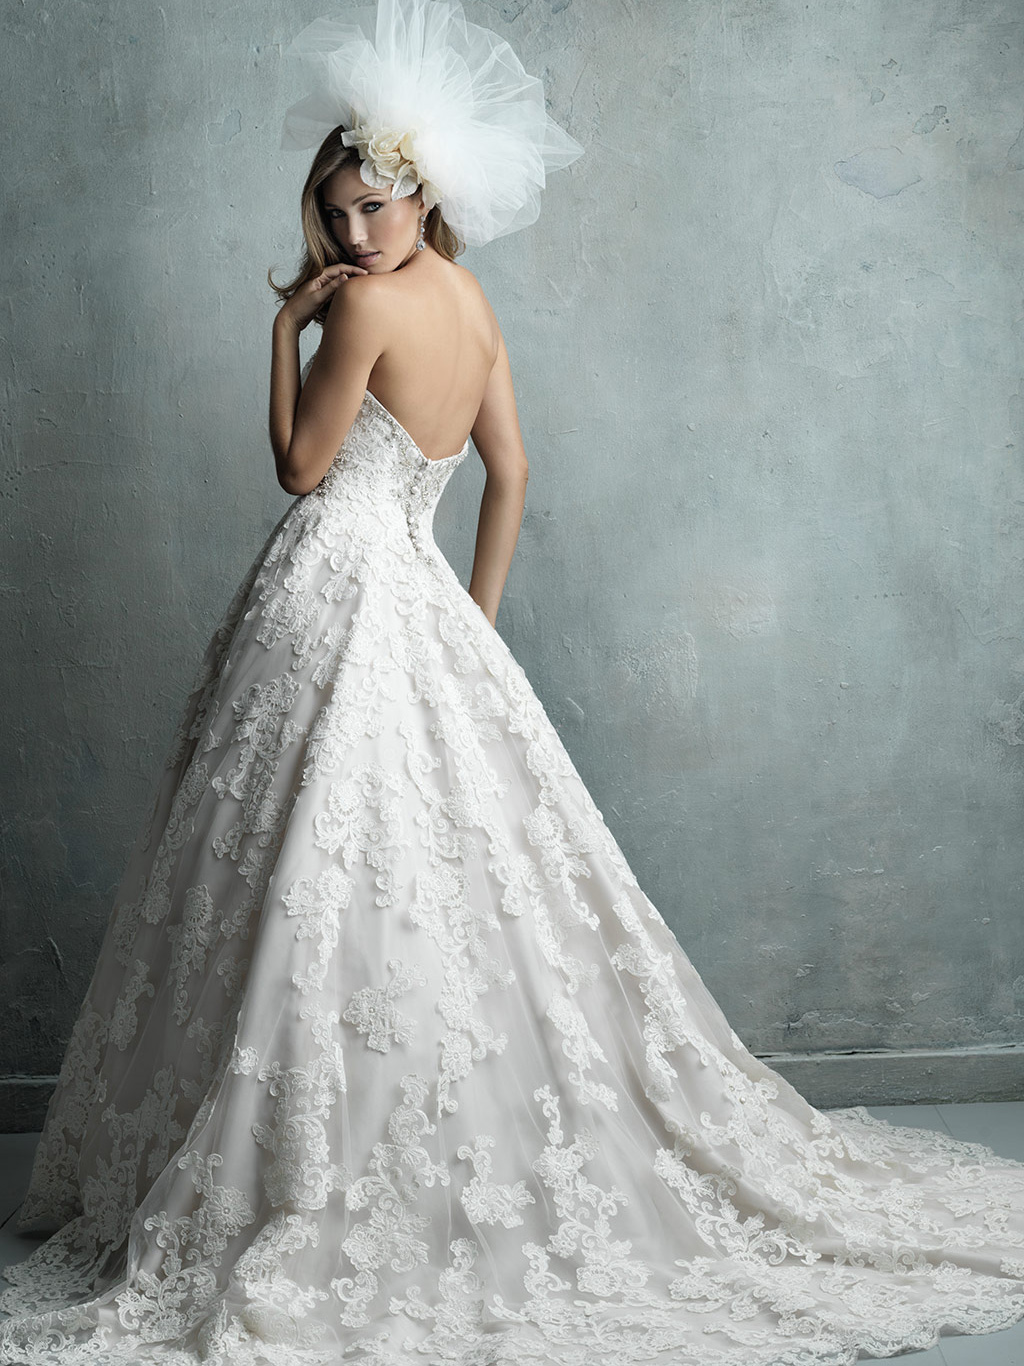 Allure Couture Sweetheart Lace Wedding Dress C328|DimitraDesigns.com